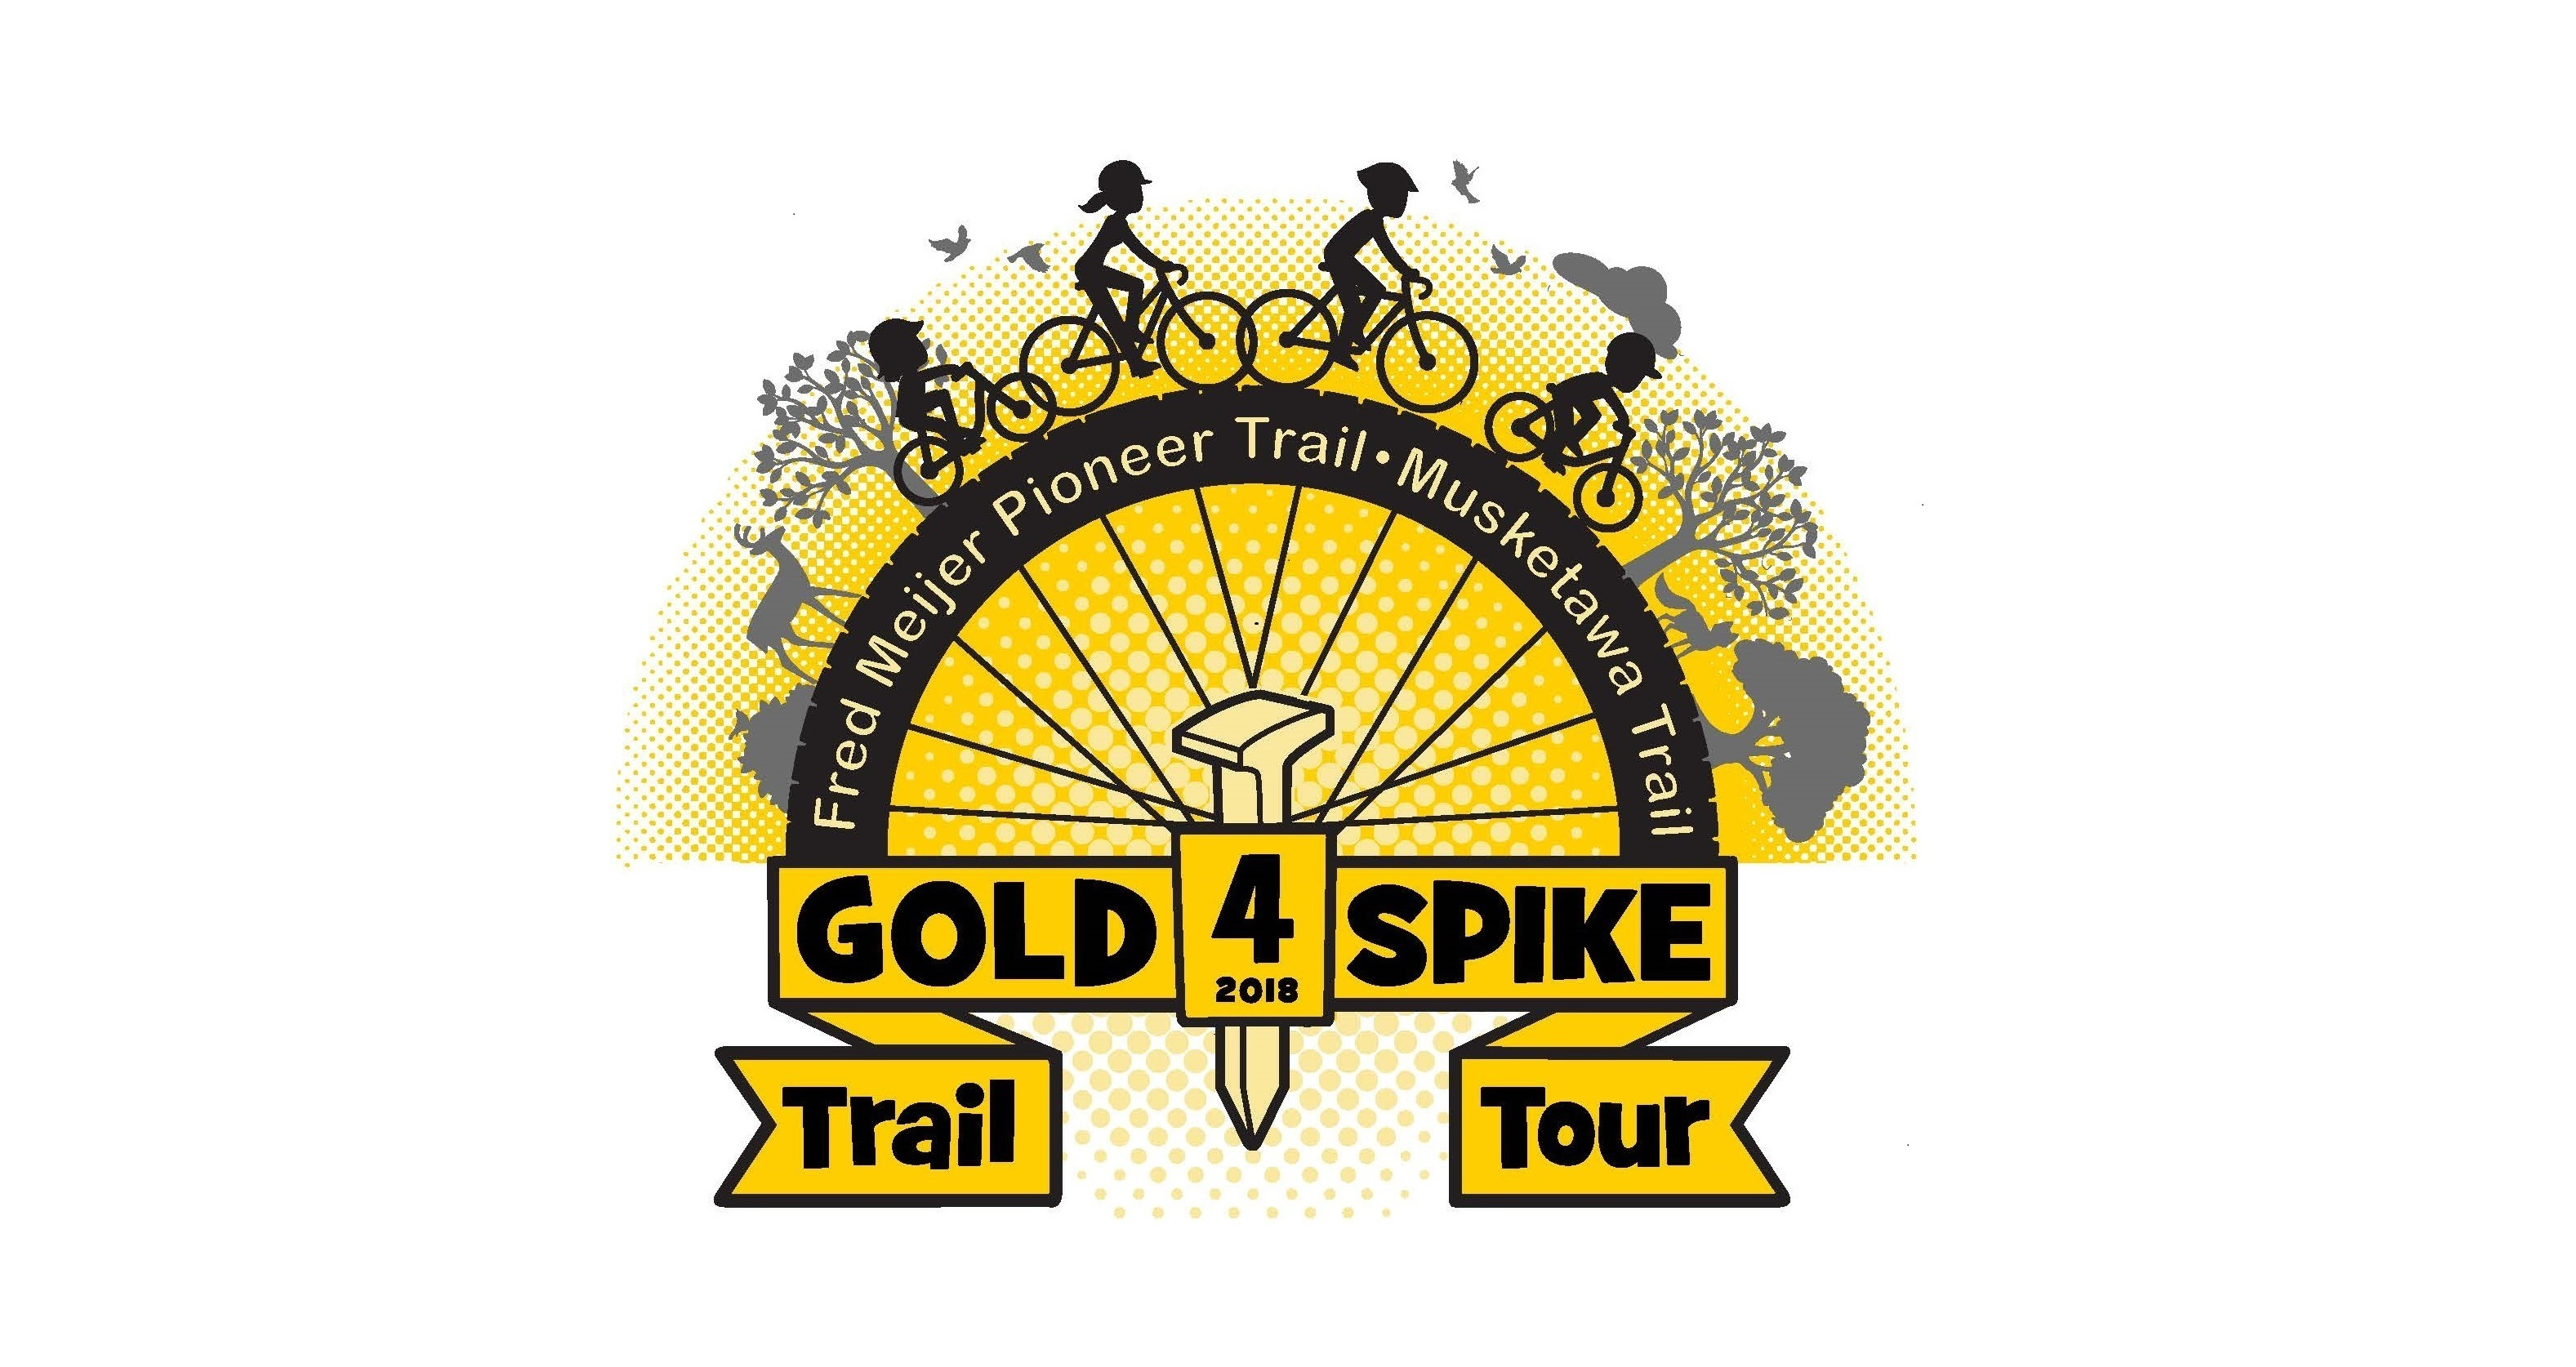 Gold Spike 4 Logo (2016)